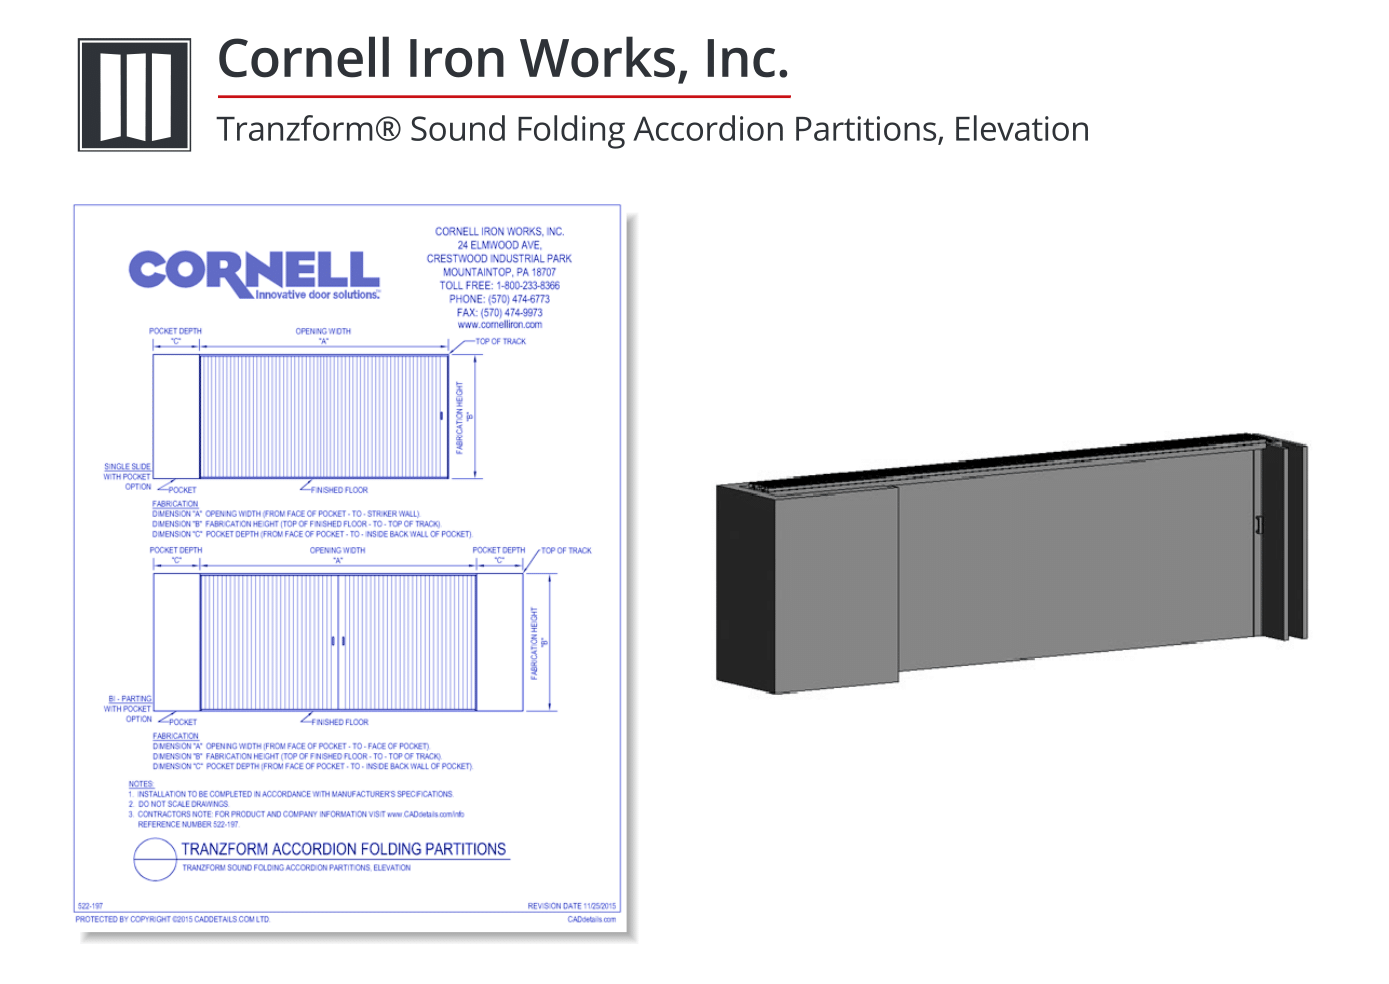 Cornell-Iron-Works-Inc-Folding-Accordion-Partition-CADdrawing.png